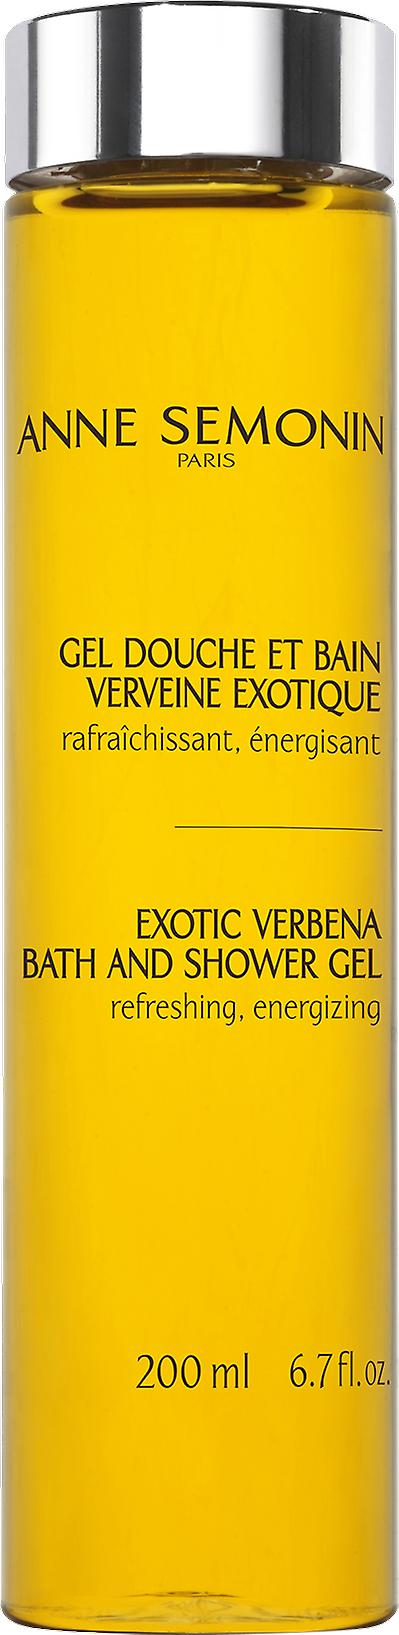 Anne Semonin Exotic Verbena Bath & Shower Gel